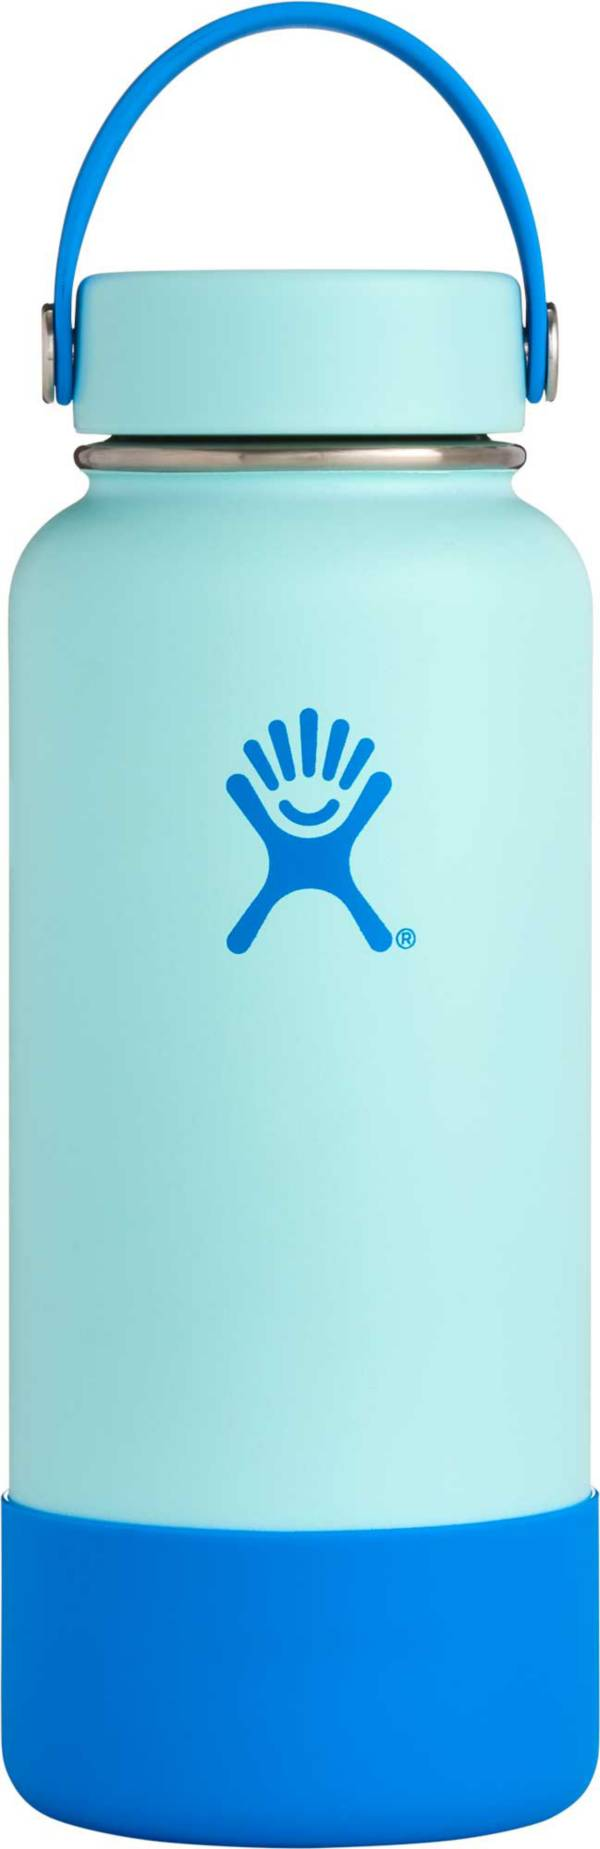 Hydro Flask Movement Collection 32 oz. Bottle product image